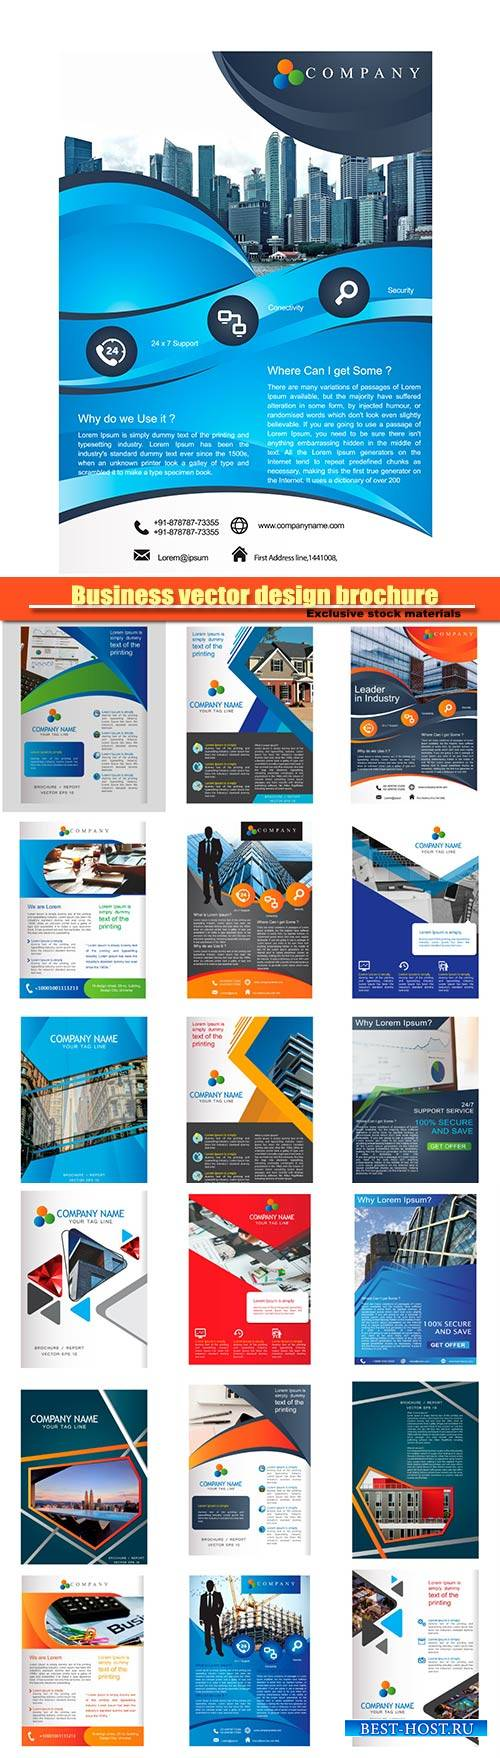 Business vector design brochure, banner template